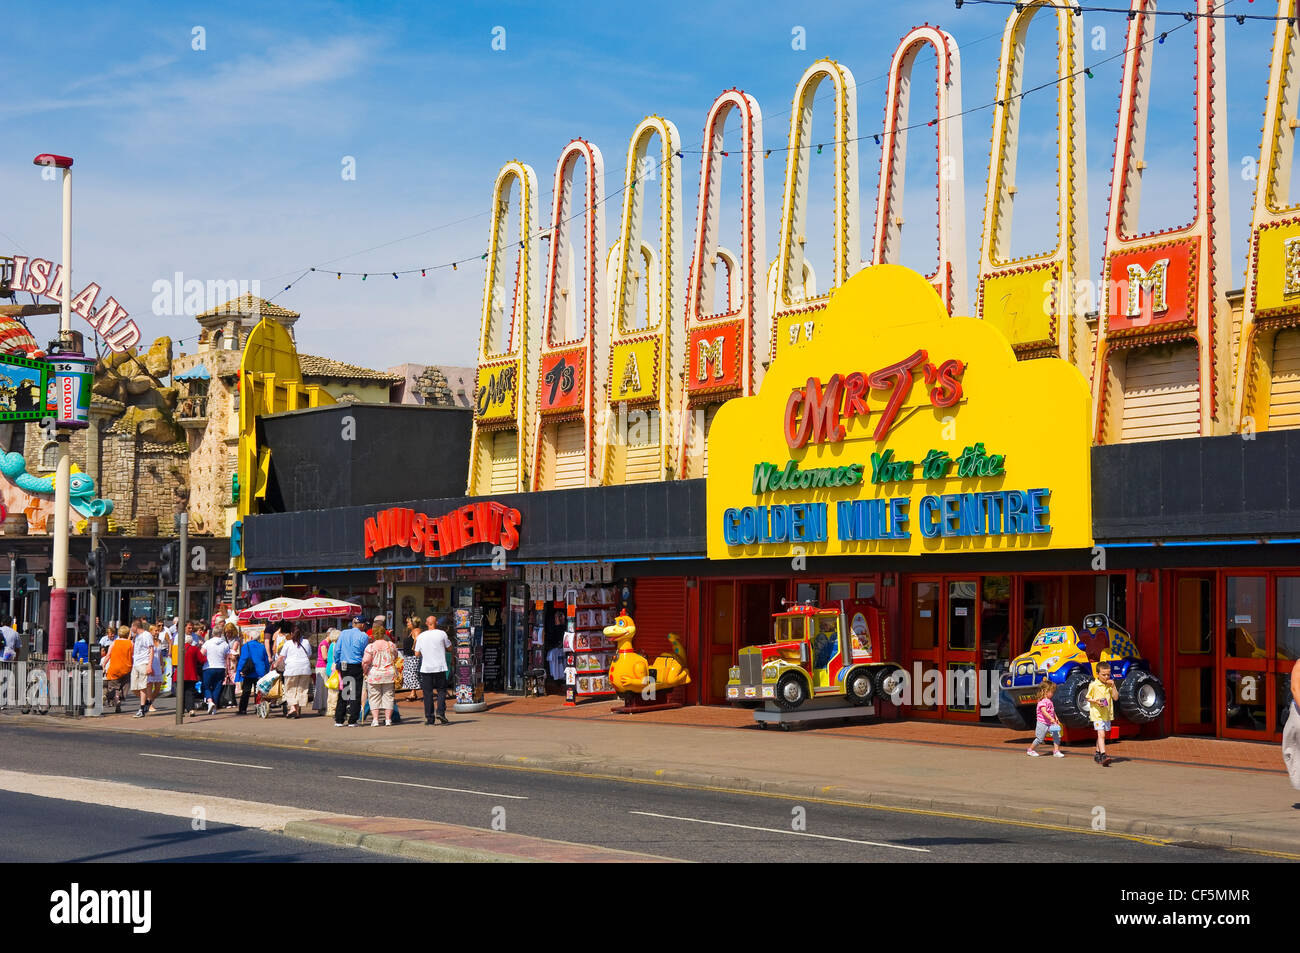 Amusements along the Golden Mile in Blackpool. - Stock Image